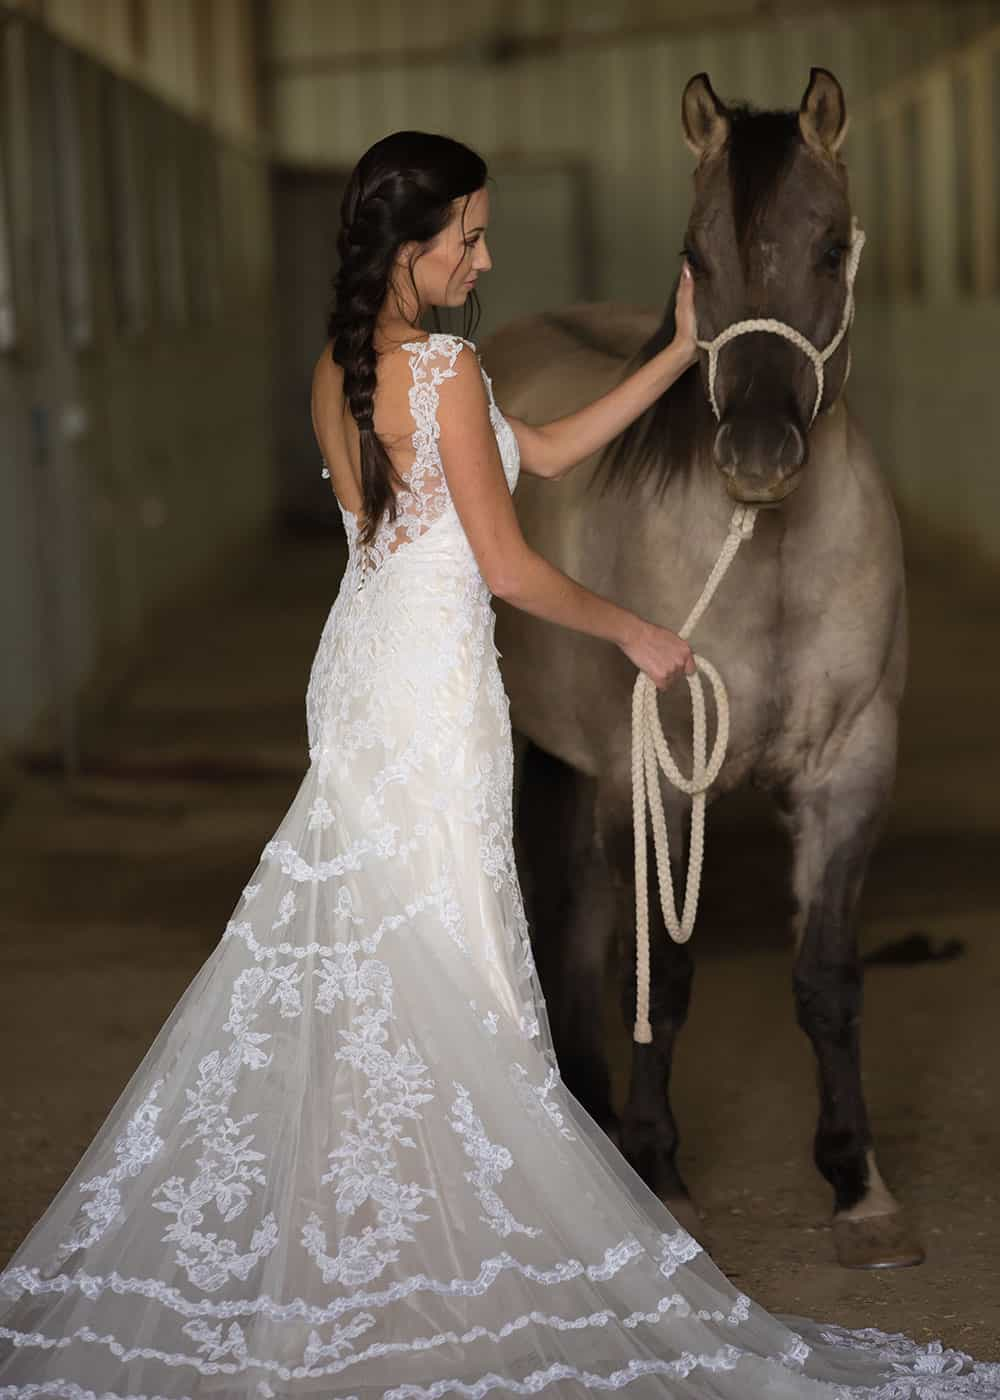 horse and bride wedding poses dunlap photography cowgirl magazine